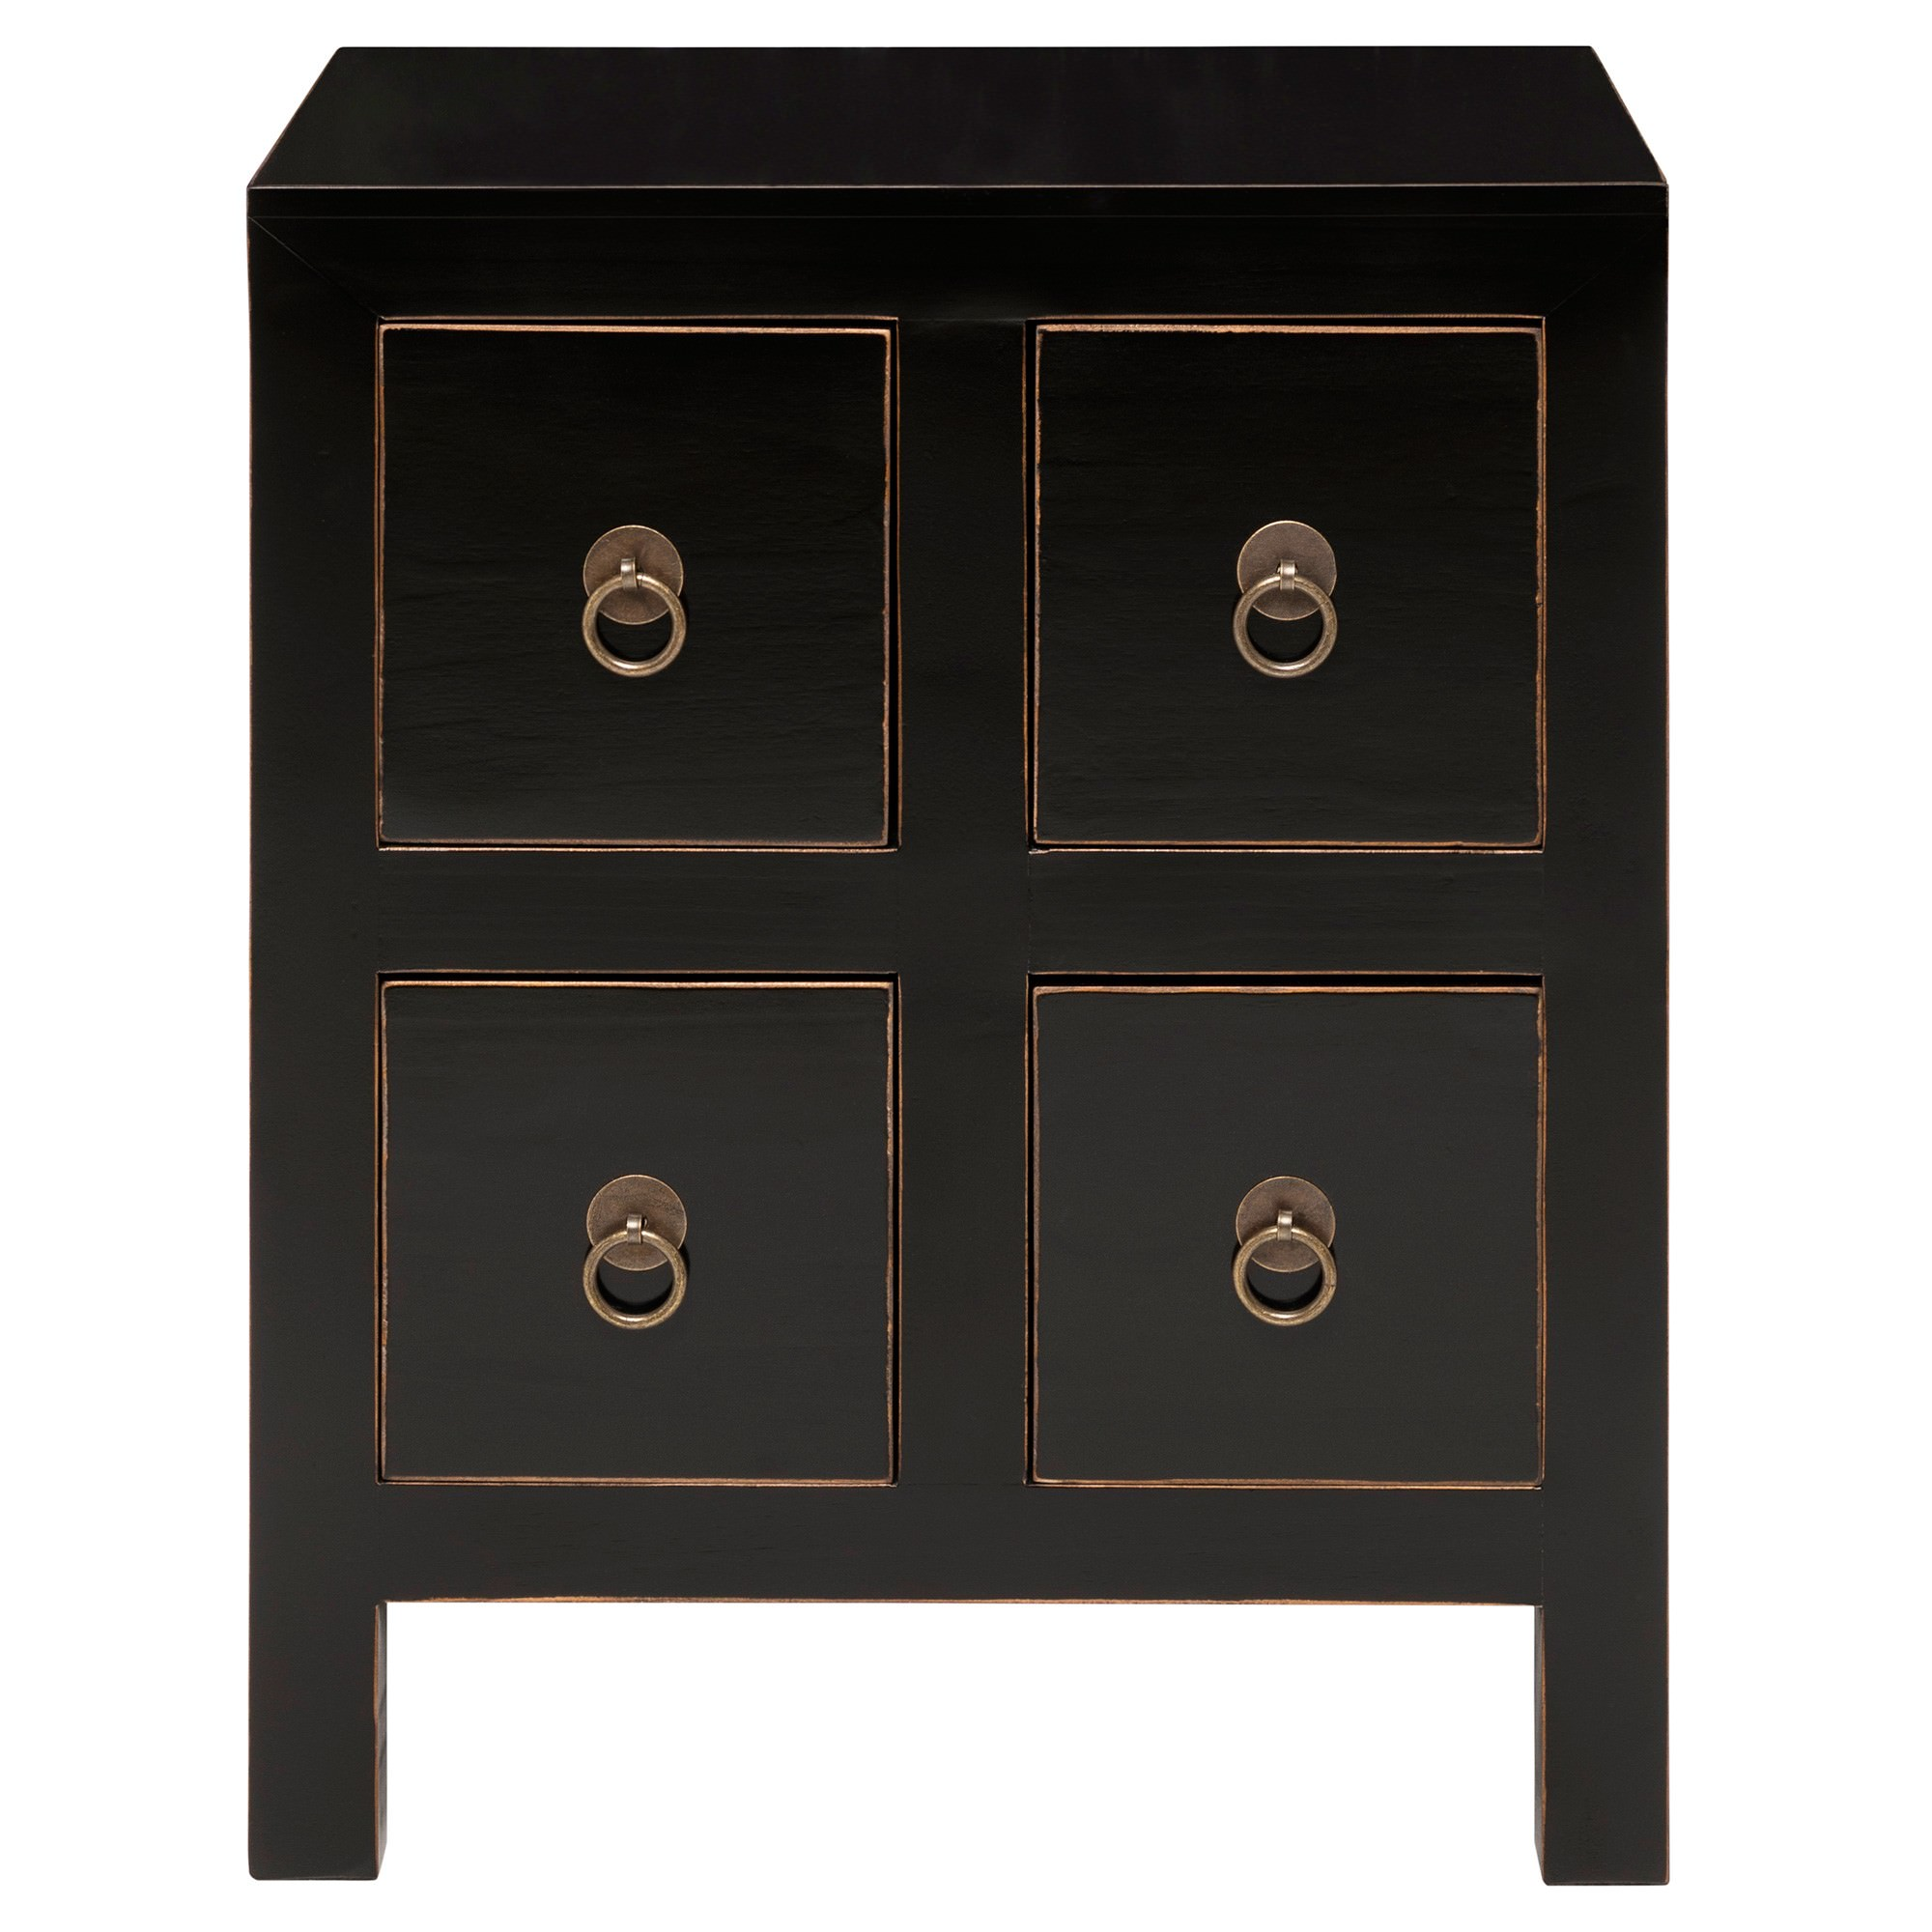 Cove Pine Timber Bedside Table, Distressed Black